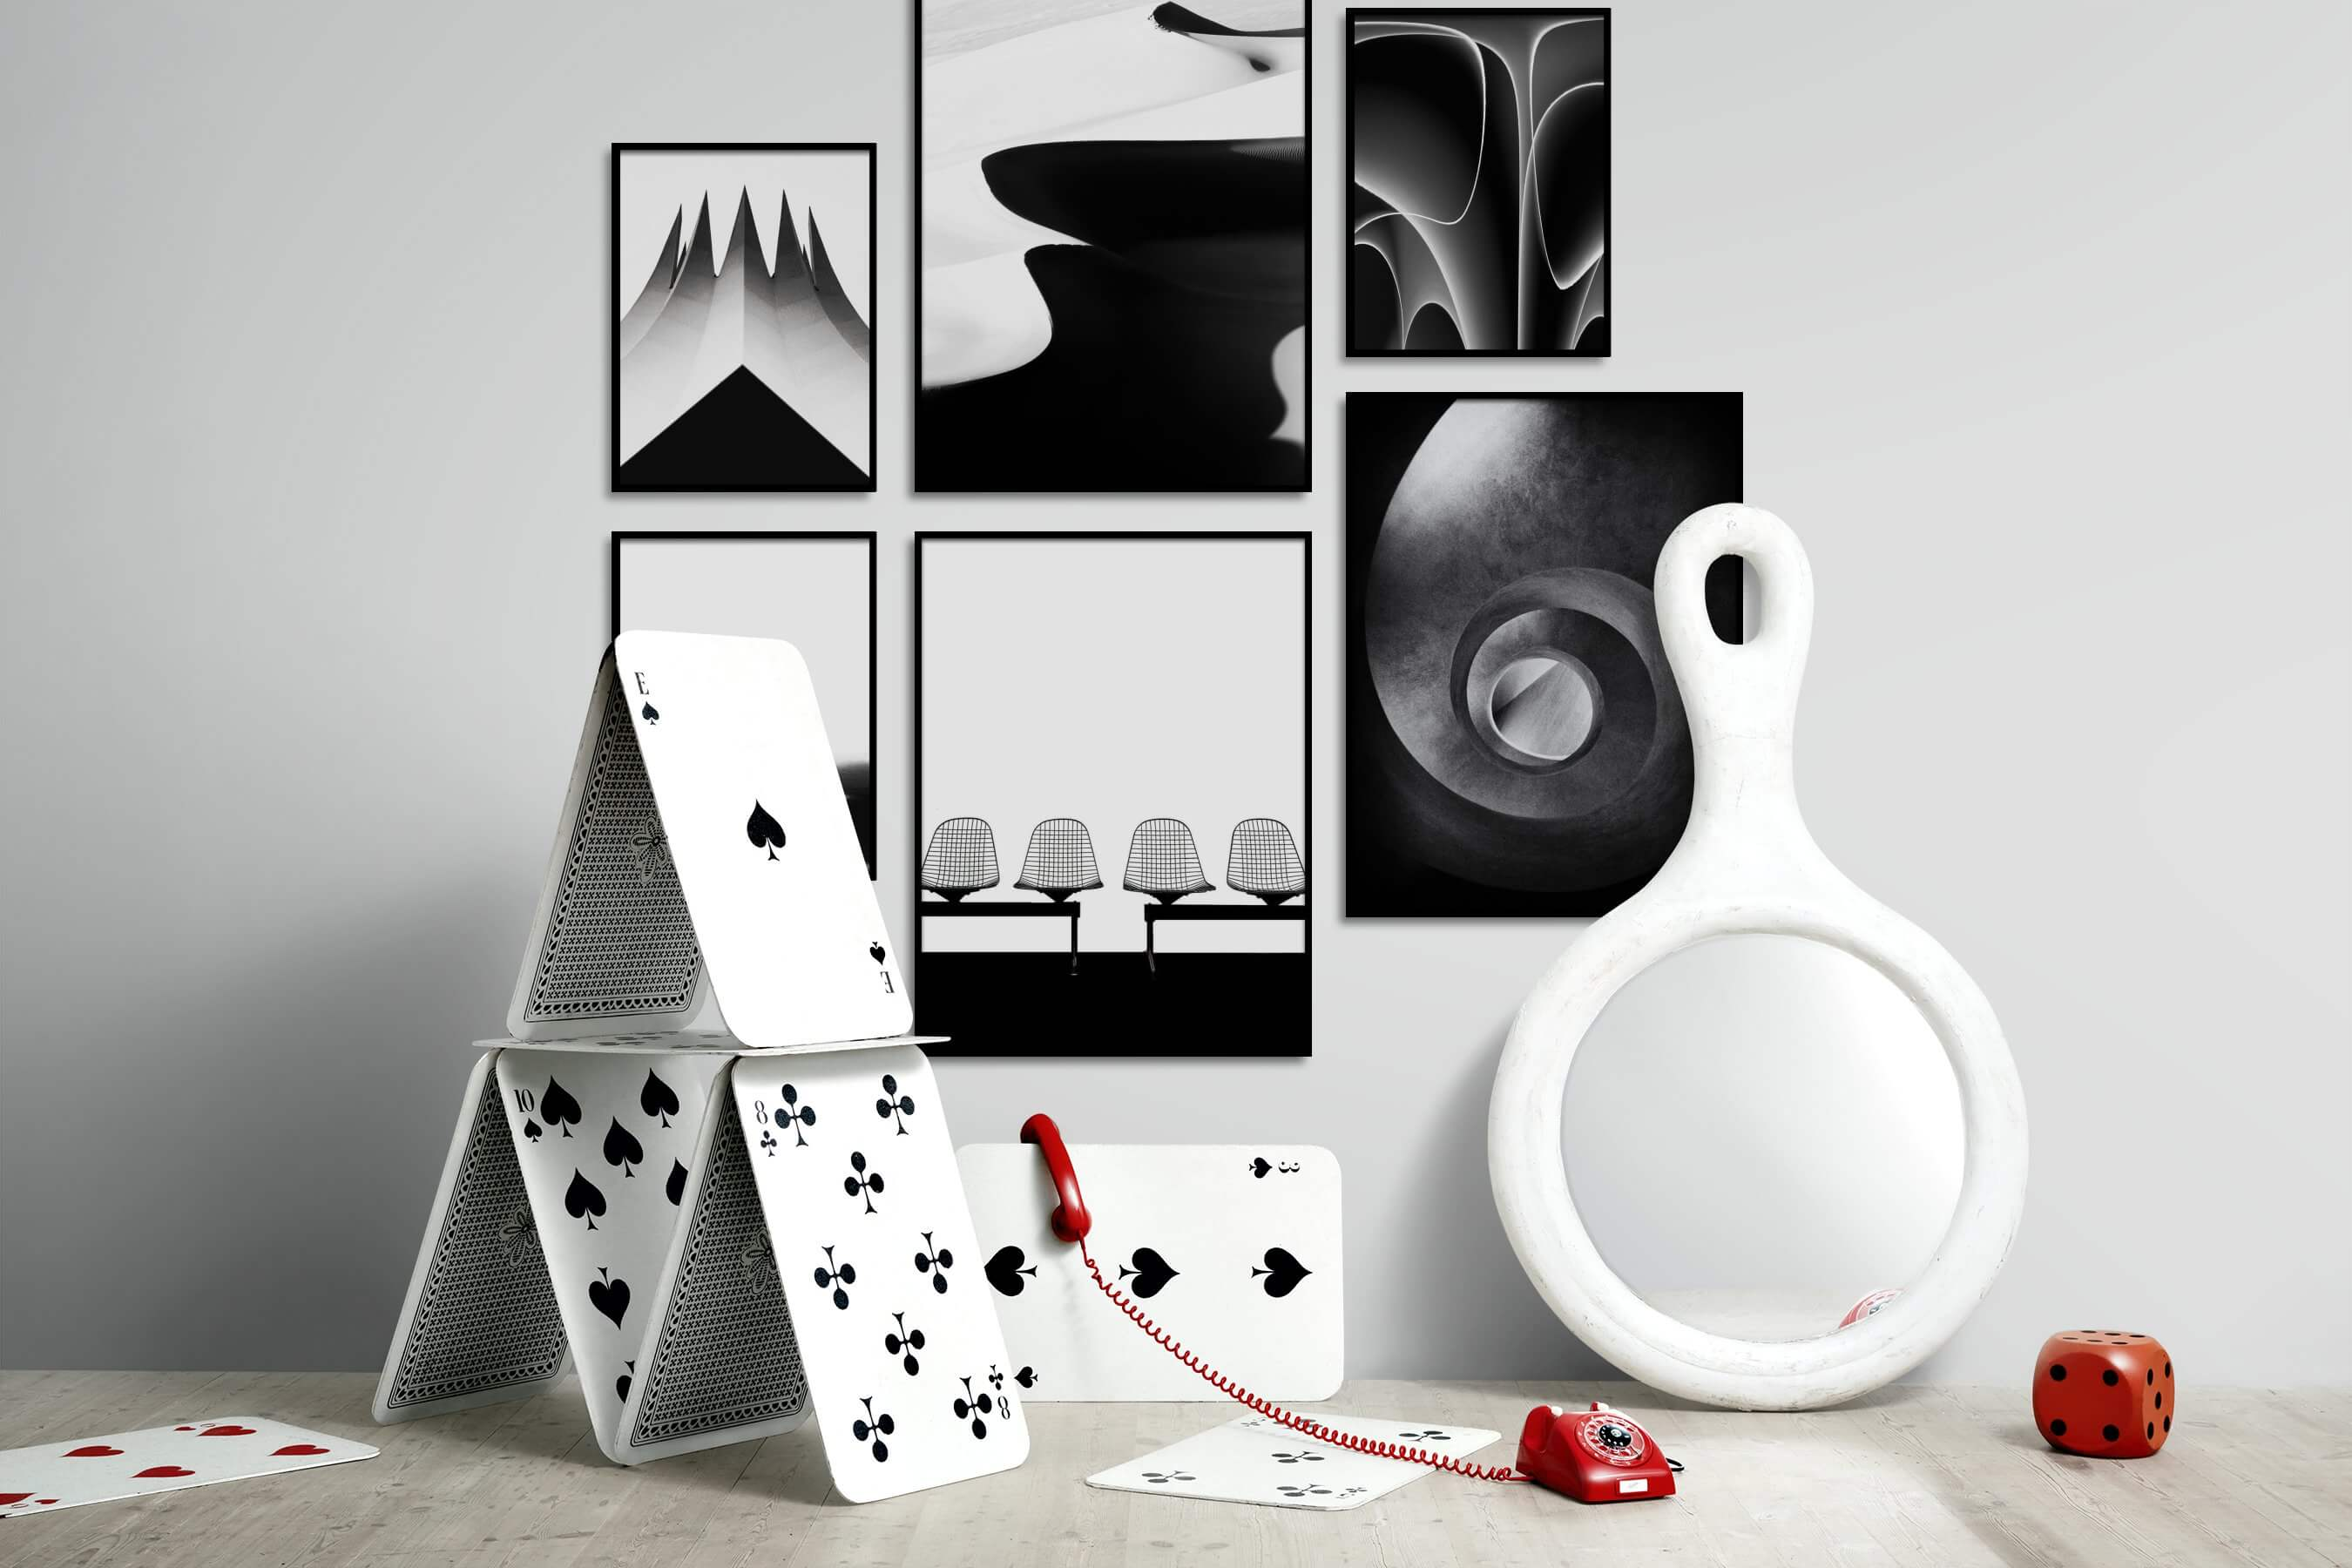 Gallery wall idea with six framed pictures arranged on a wall depicting Black & White, Bright Tones, For the Moderate, Nature, For the Minimalist, Country Life, and For the Maximalist